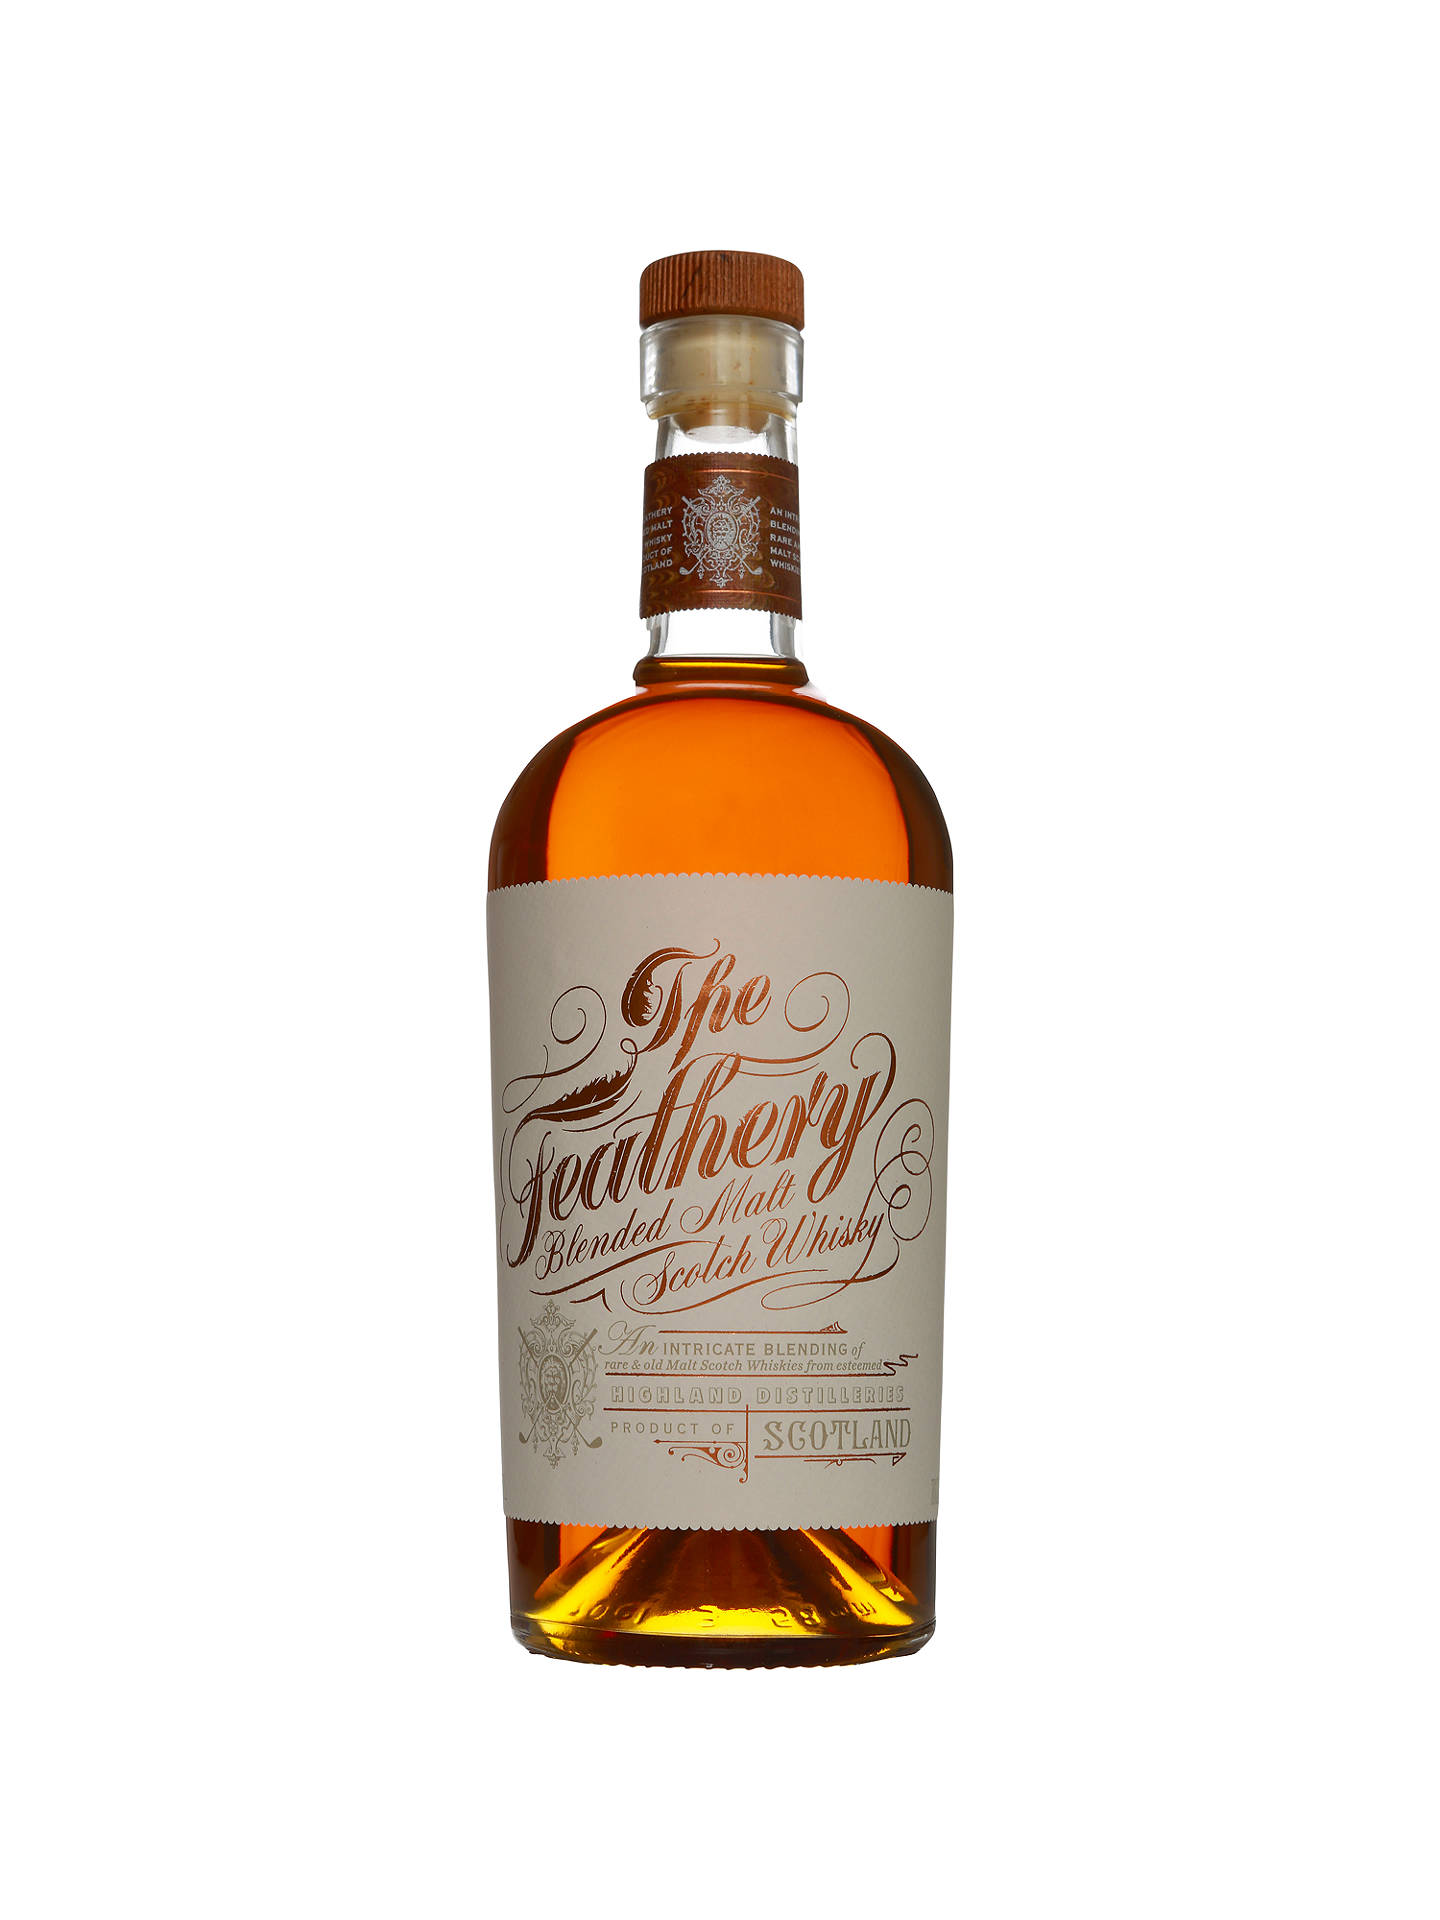 Buy The Feathery Malt Scotch Whisky, 70cl Online at johnlewis.com